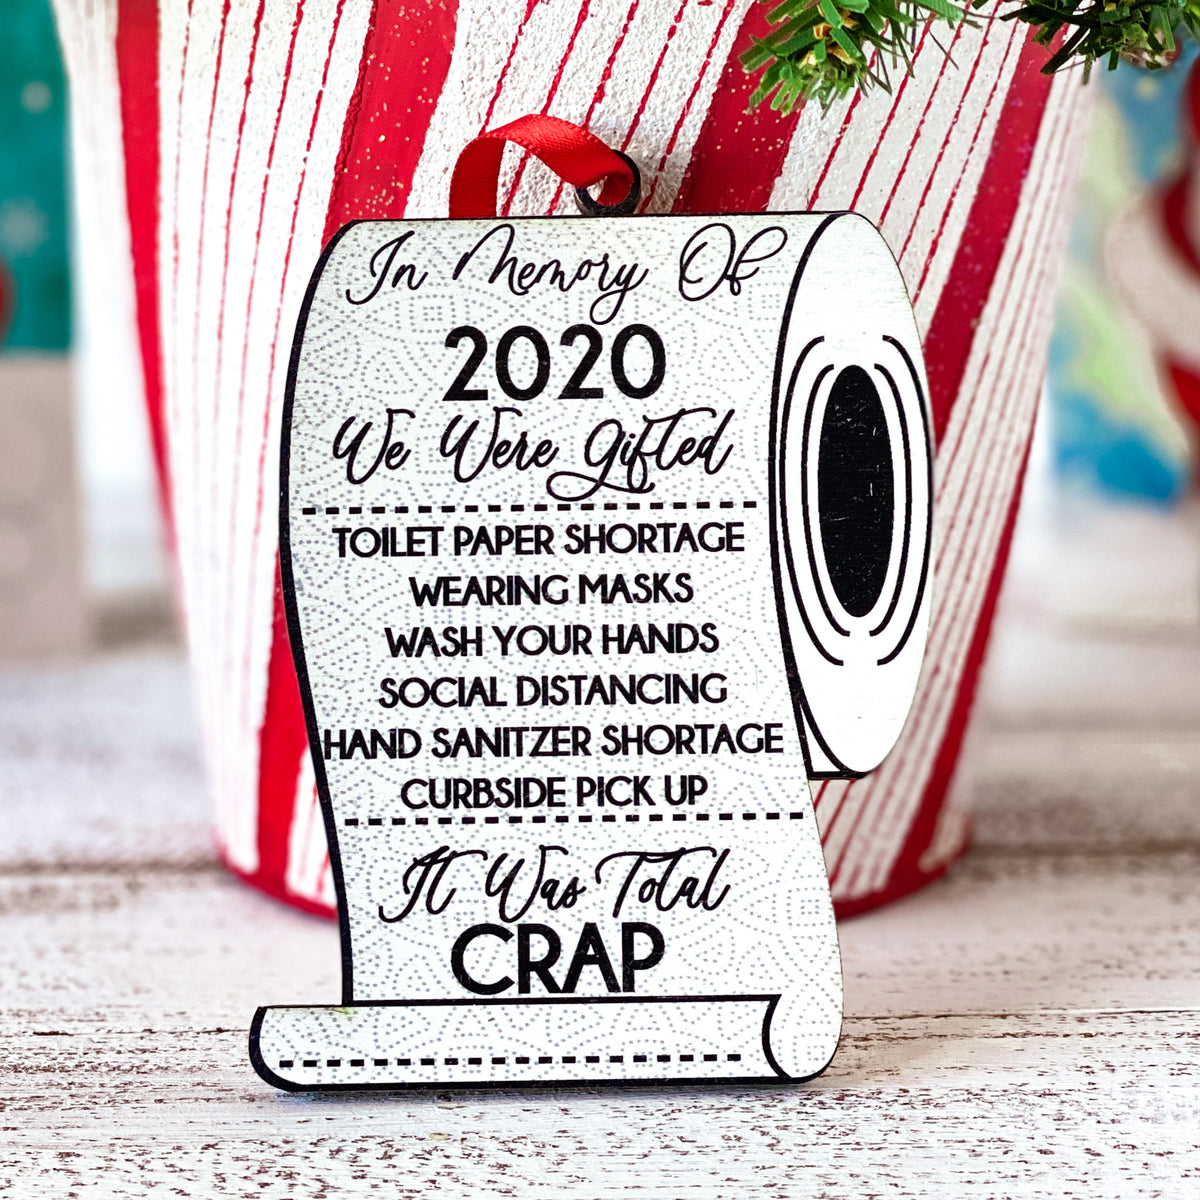 In Memory of 2020 We Were Gifted Toilet Paper Shortage, Wearing Masks, Wash Your Hands, Social Distancing, Hand Sanitizer Shortage, & Curbside Pickup. It Was Total Crap. Printed on Toilet Paper Shape.